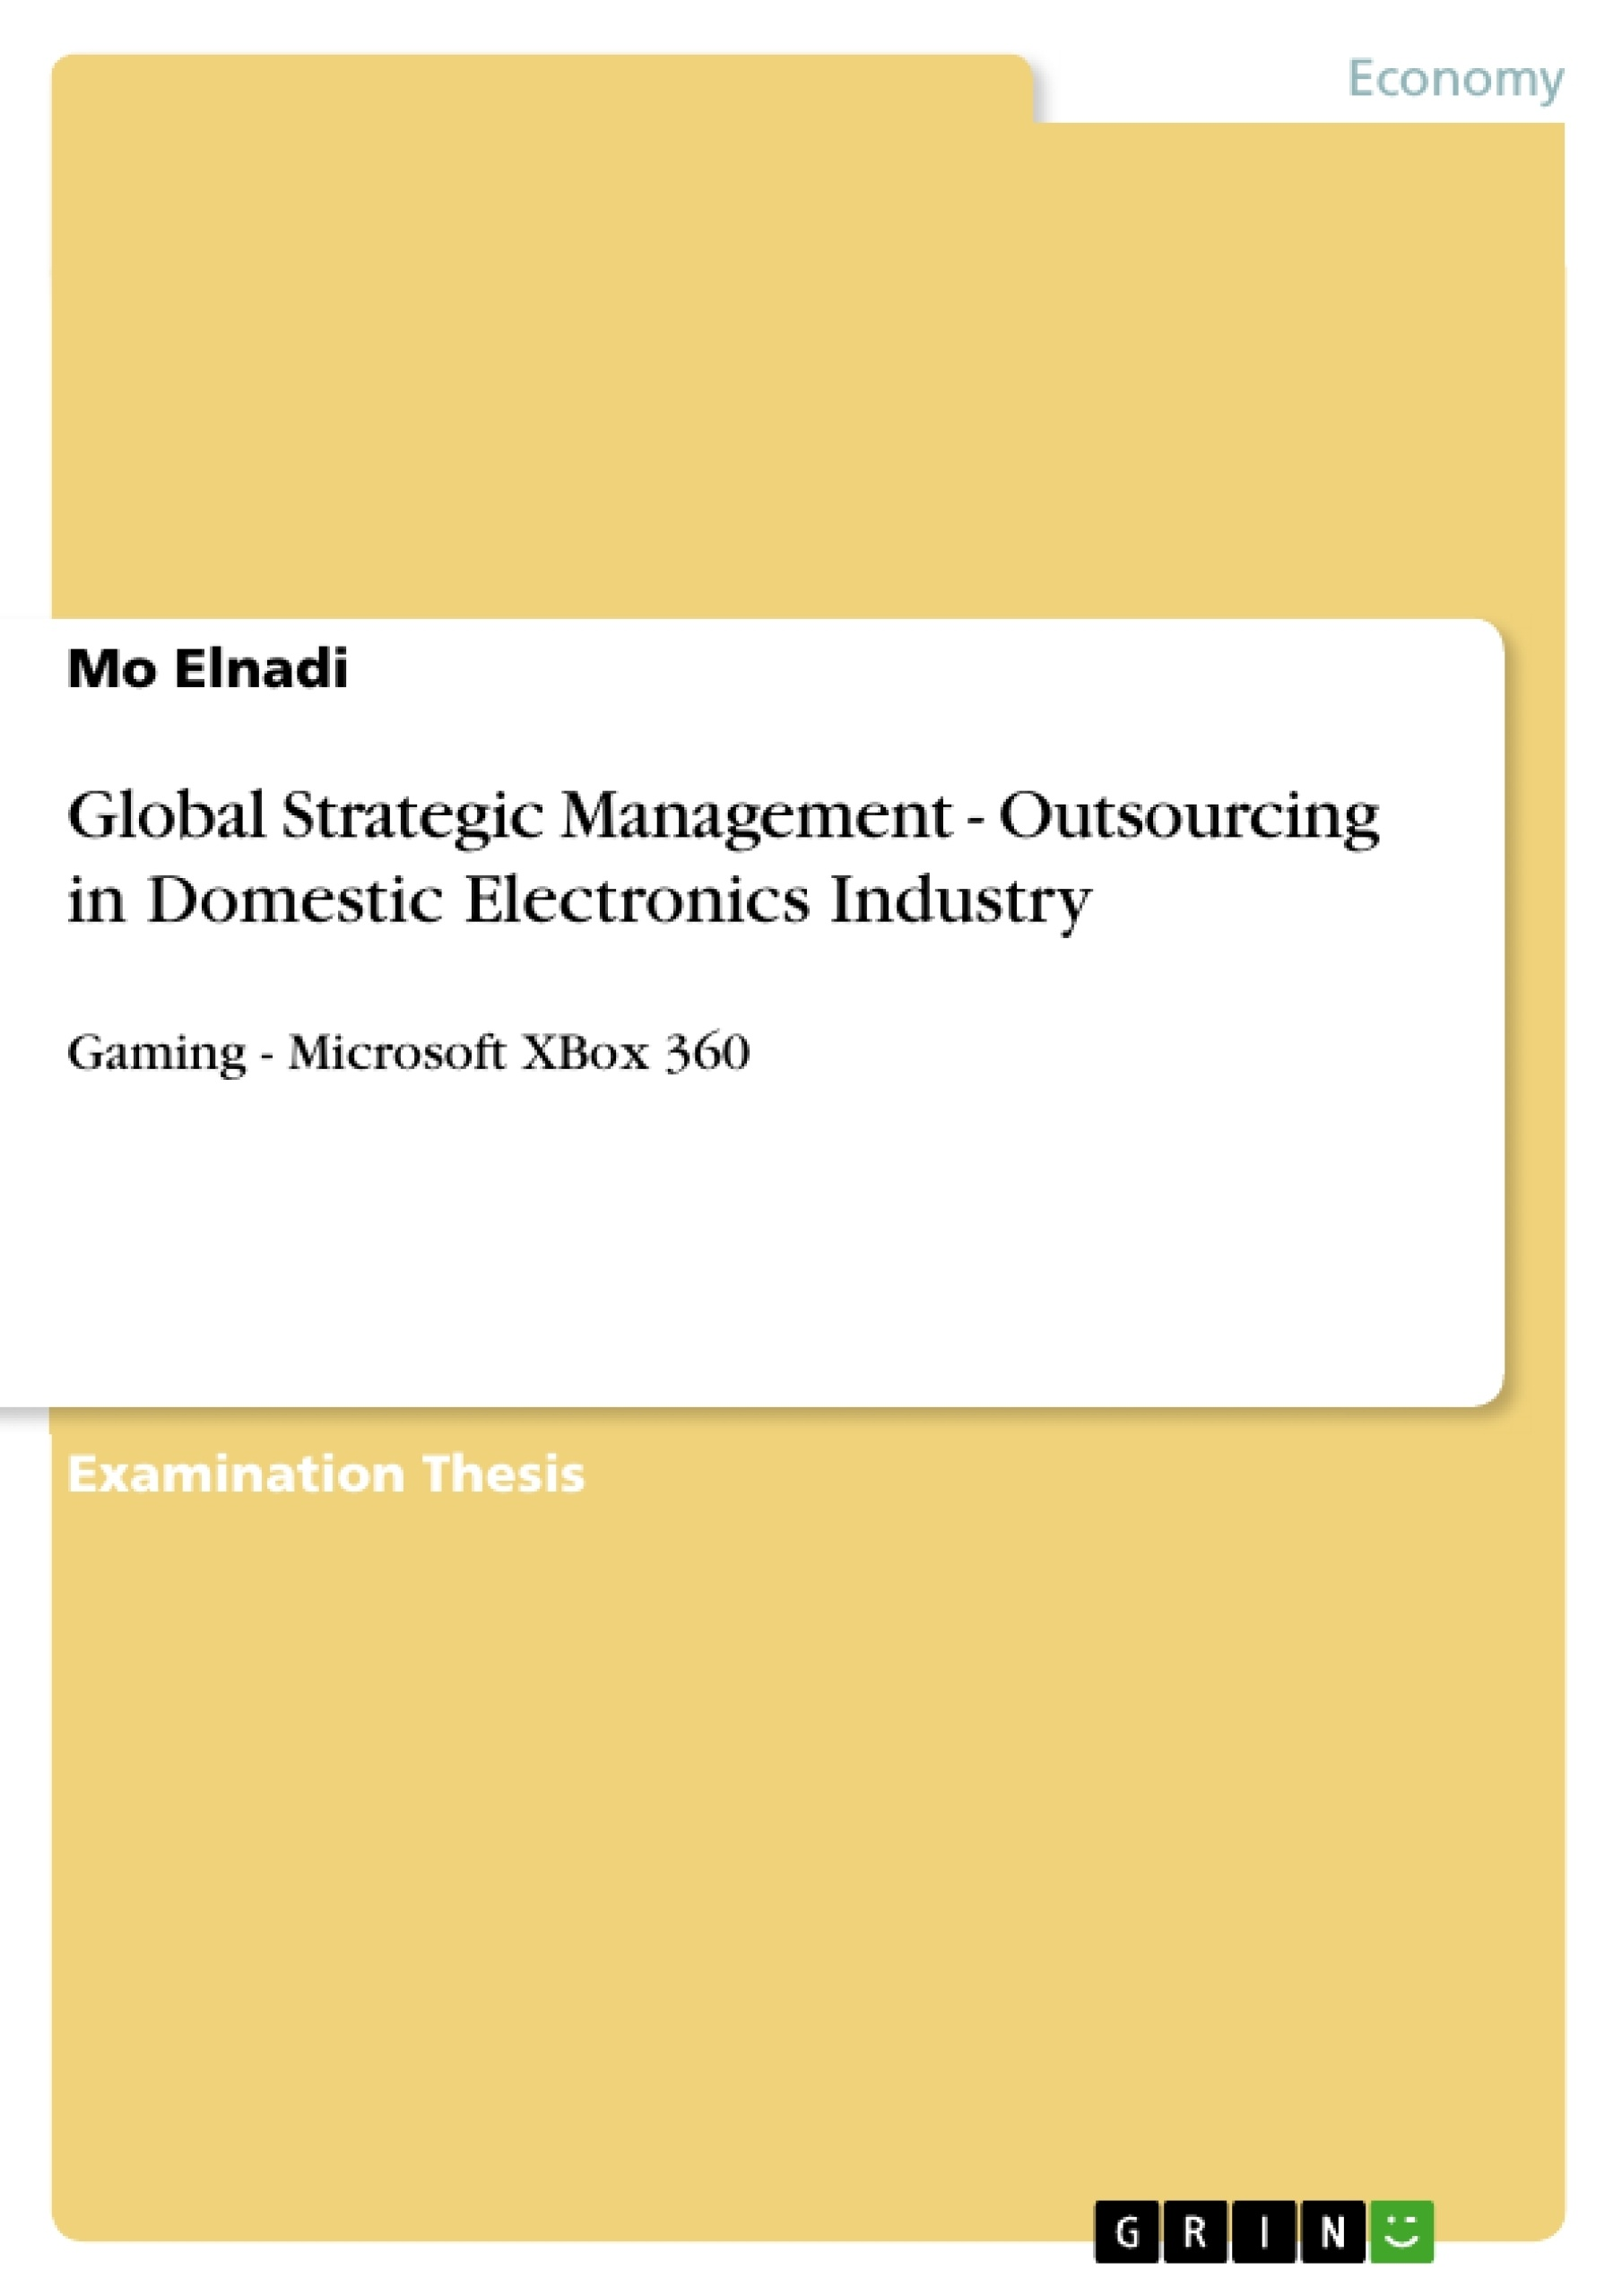 Title: Global Strategic Management - Outsourcing in Domestic Electronics Industry